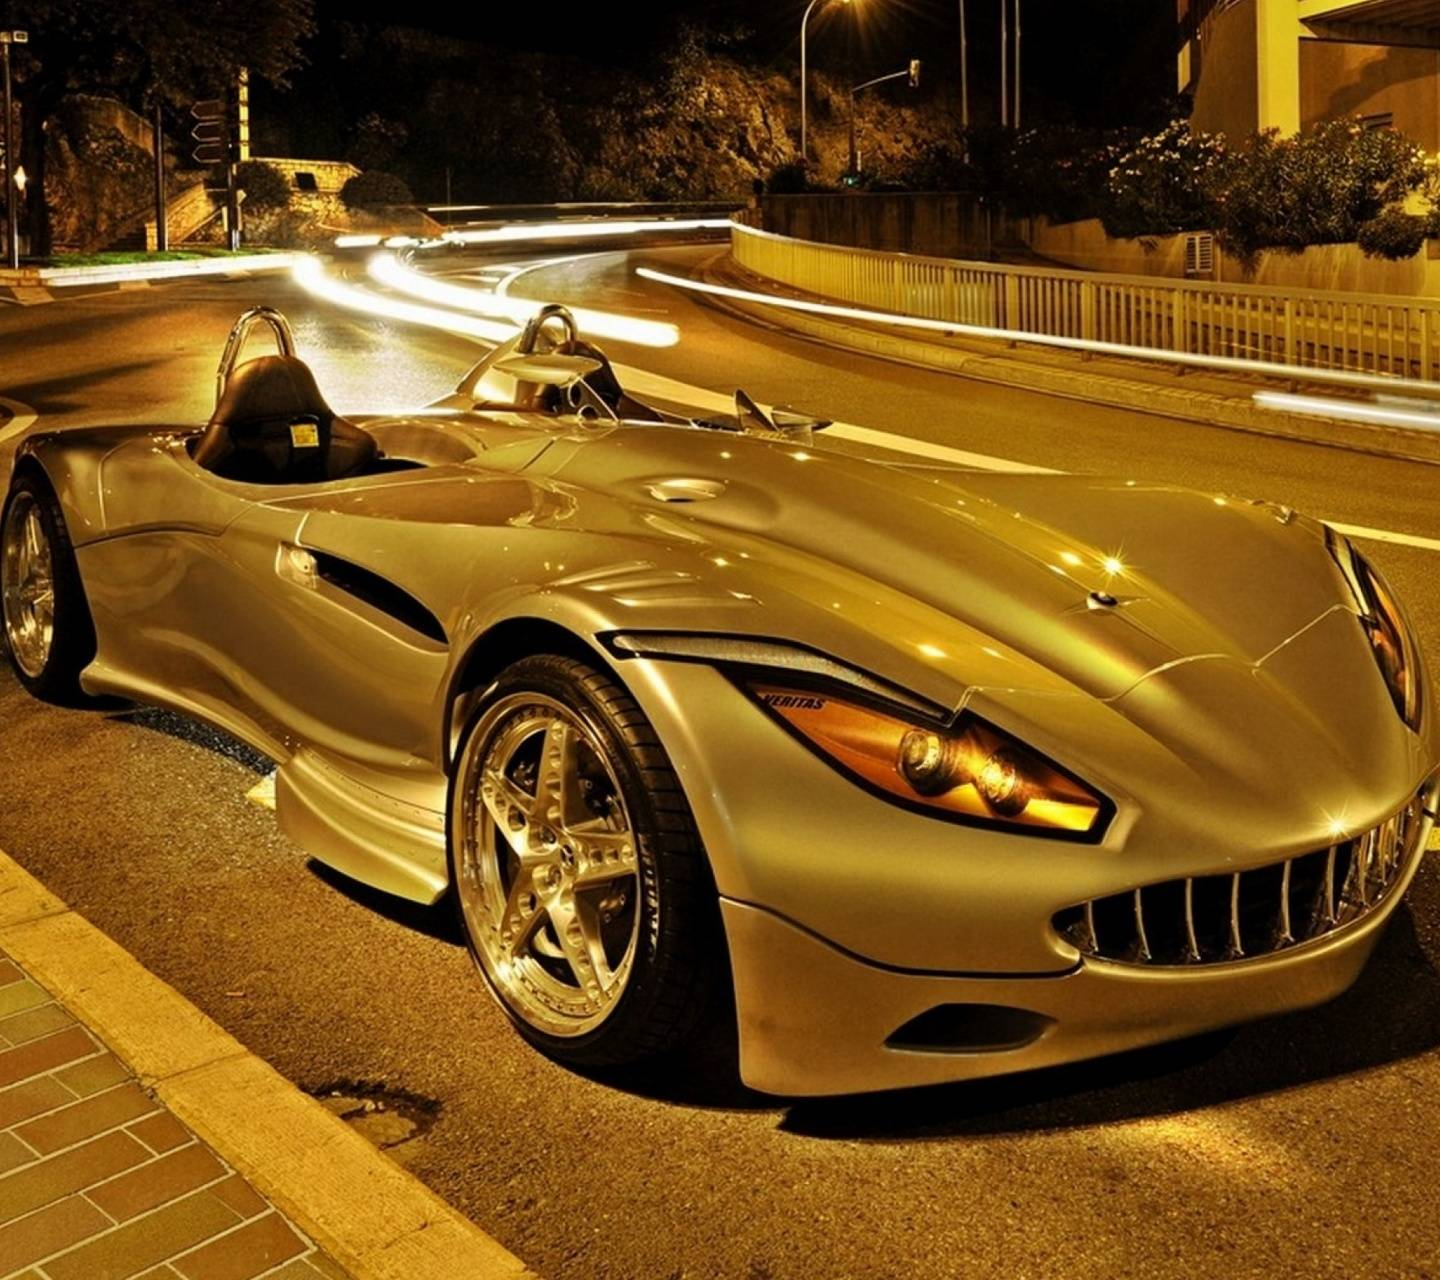 Gold Cars Wallpapers Top Free Gold Cars Backgrounds